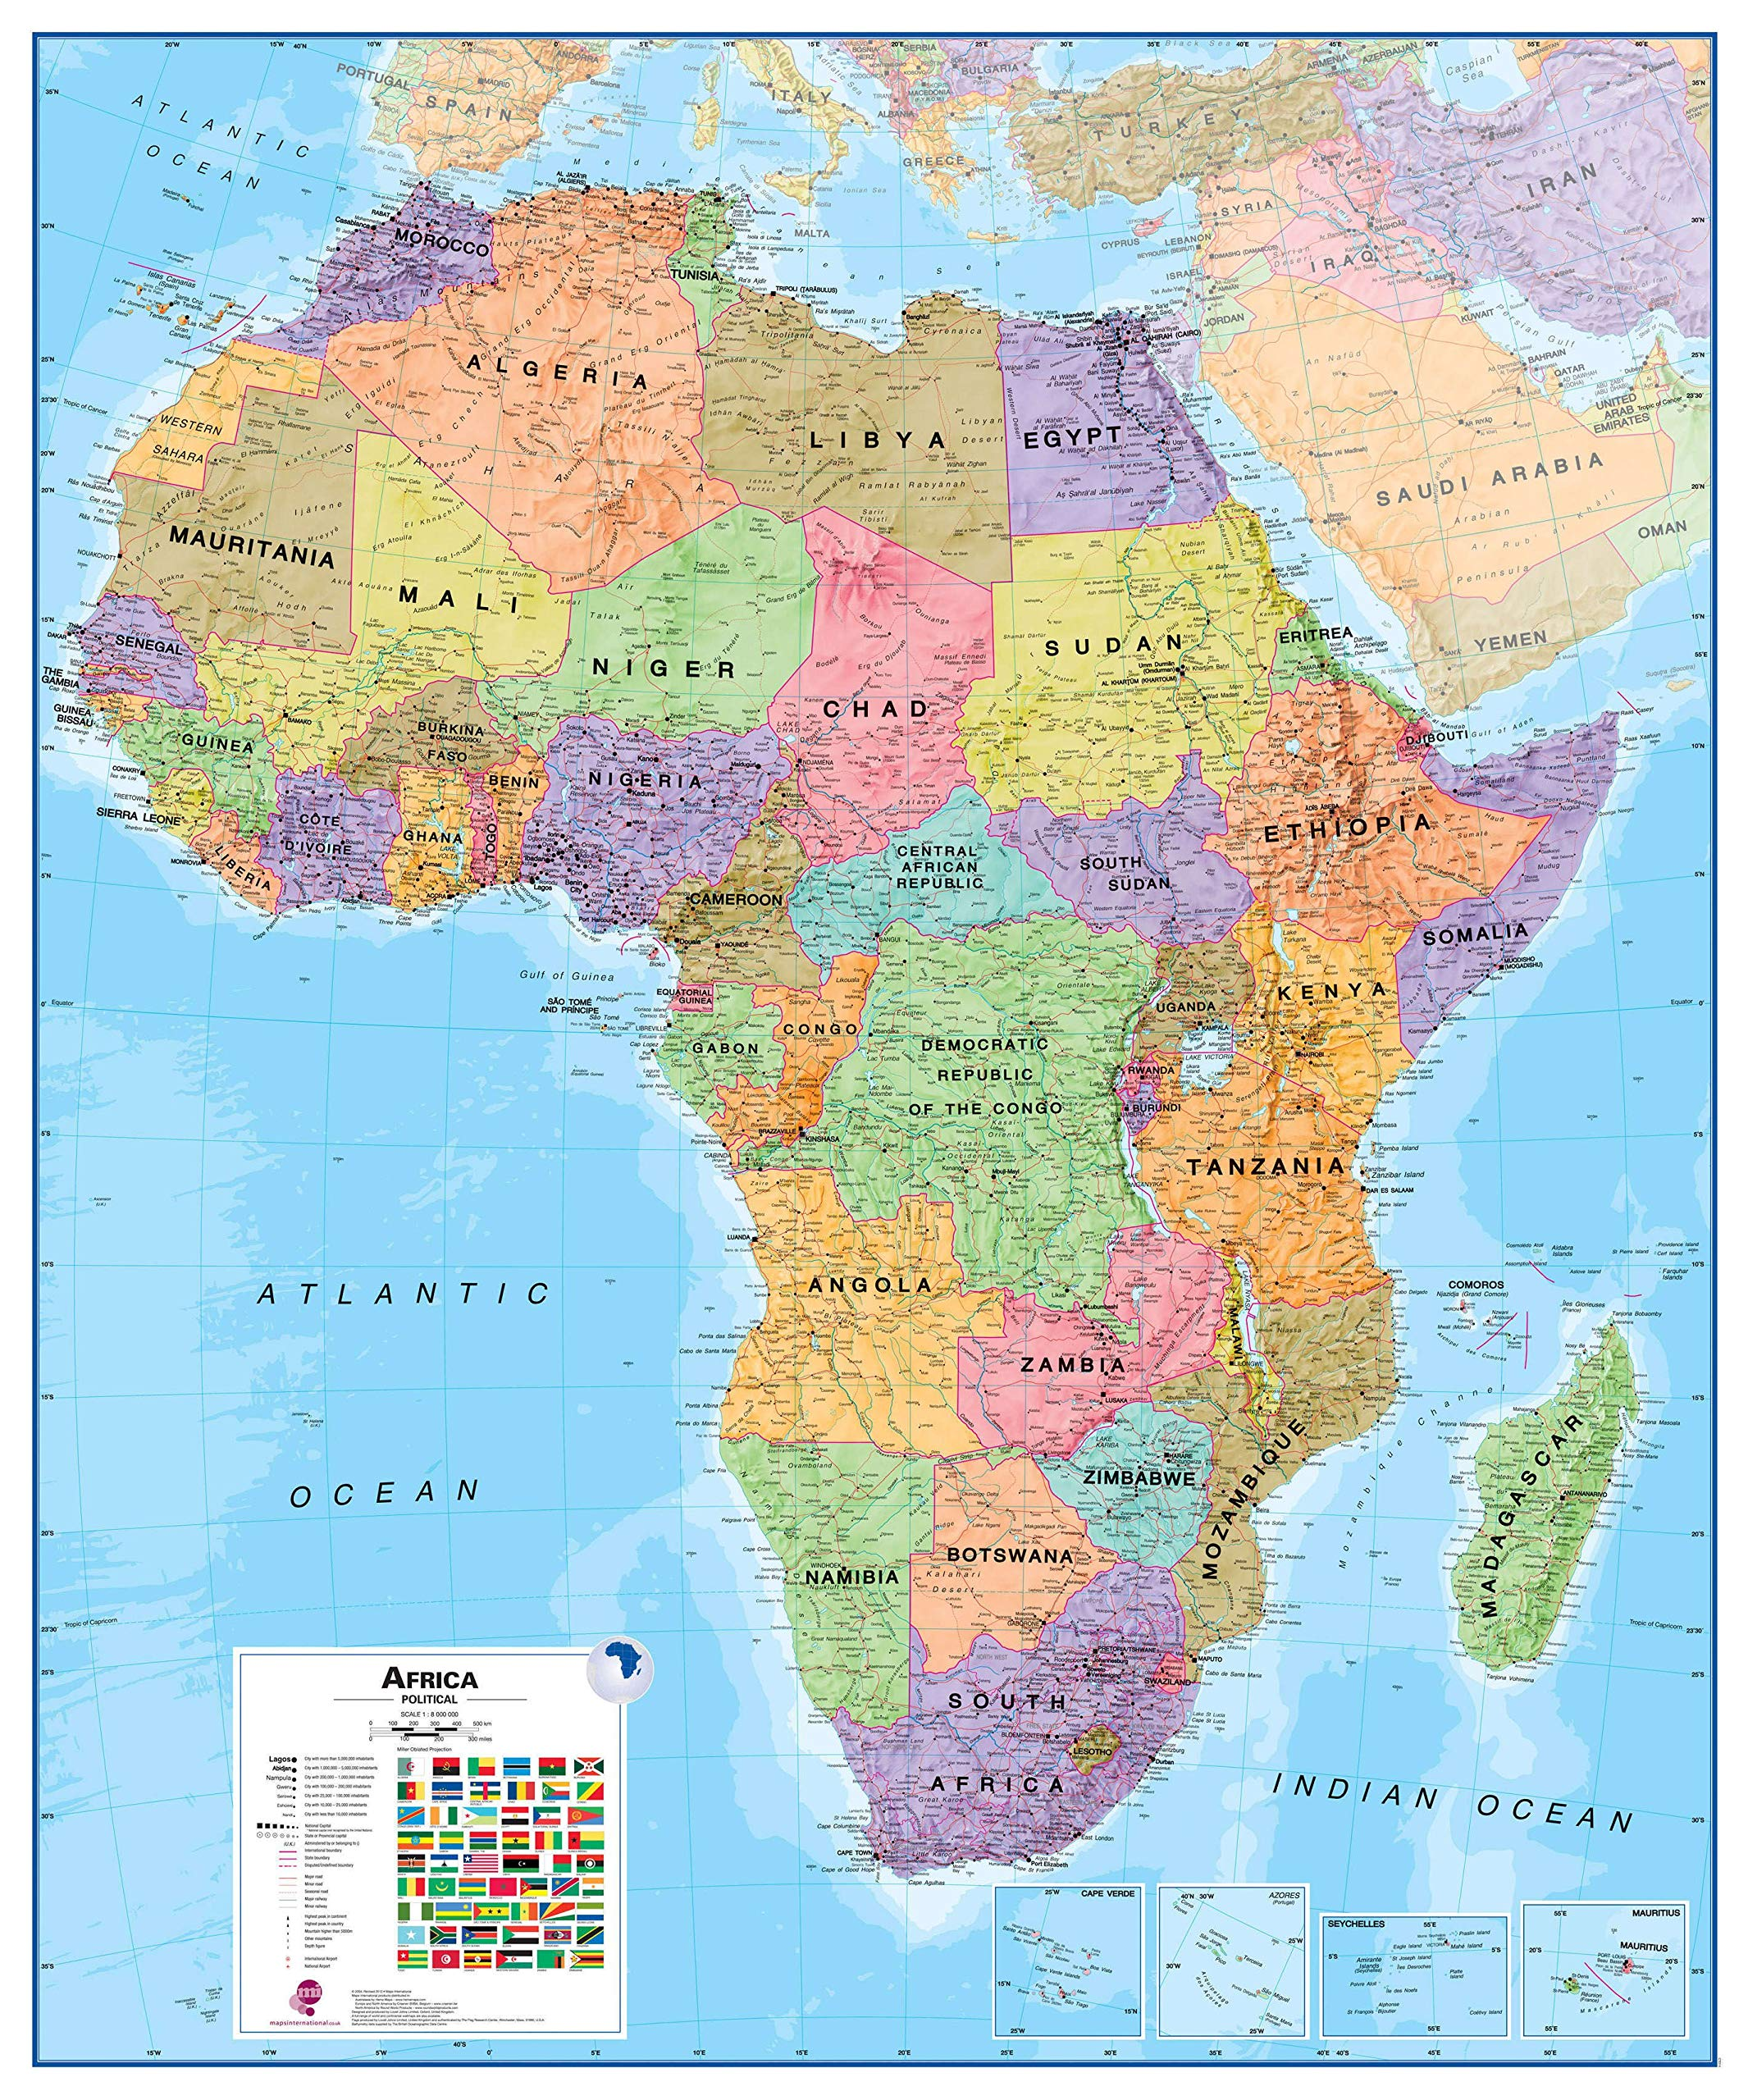 18x22 Paper Swiftmaps.com Africa Wall Map GeoPolitical Edition by Swiftmaps